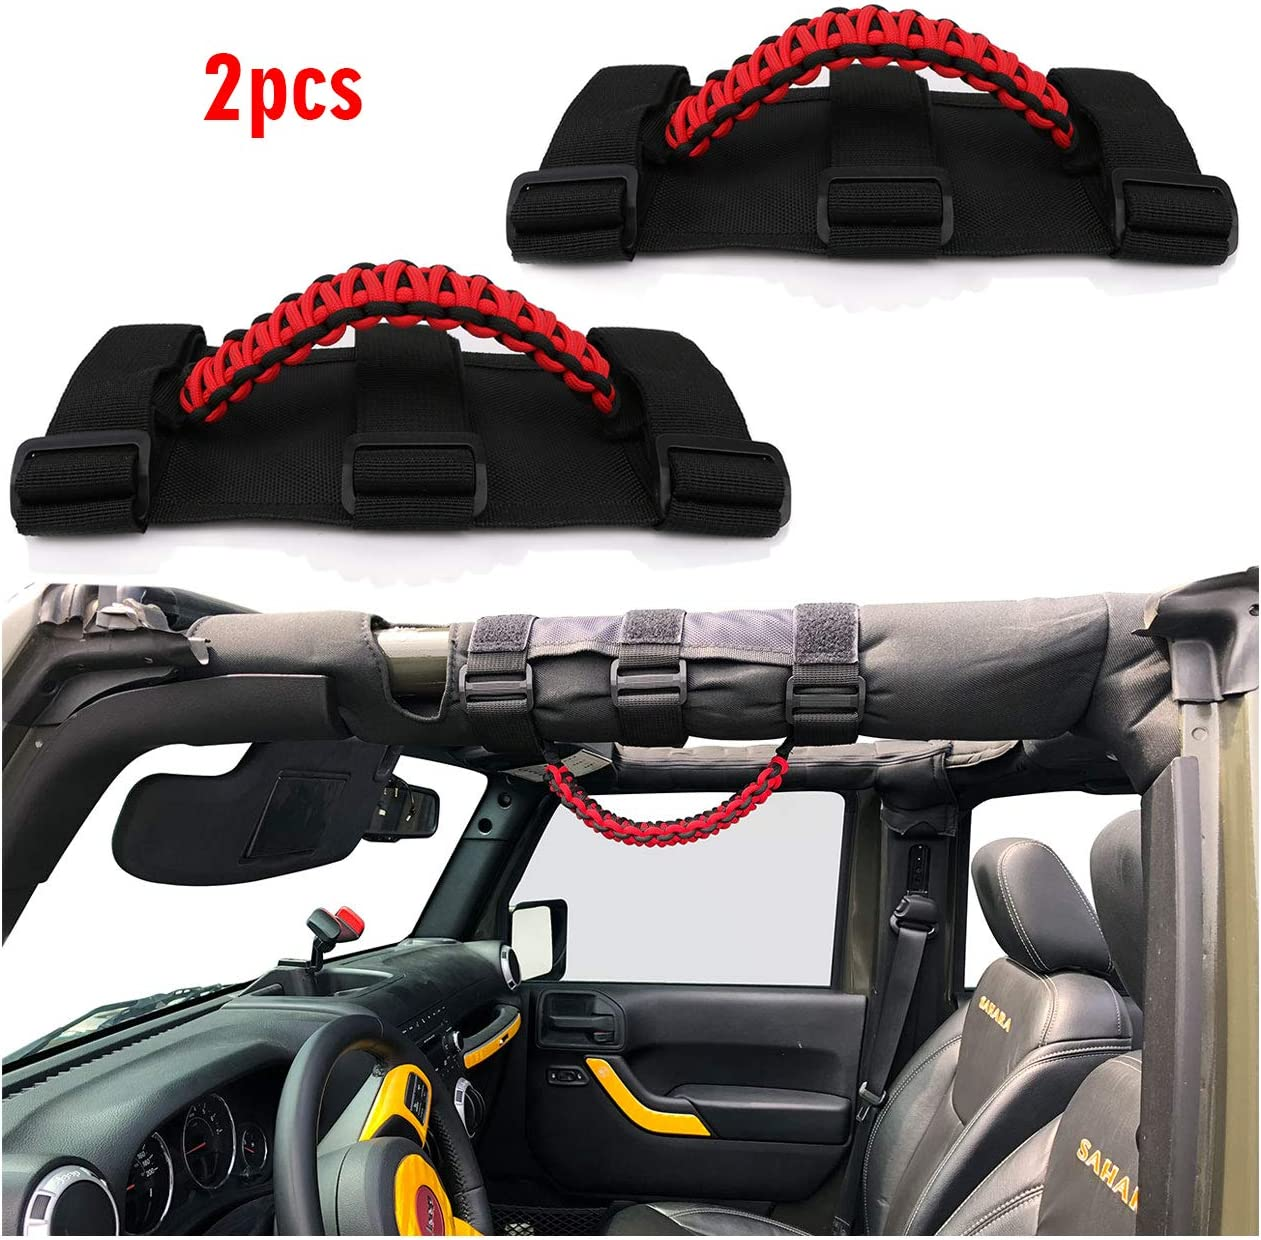 Black,Set of 4 Pieces Jade Onlines Durable Tie Down Straps Soft Top Straps Window Roll Up Snap Straps Sunrider Straps for Jeep Wrangler 2007-2020